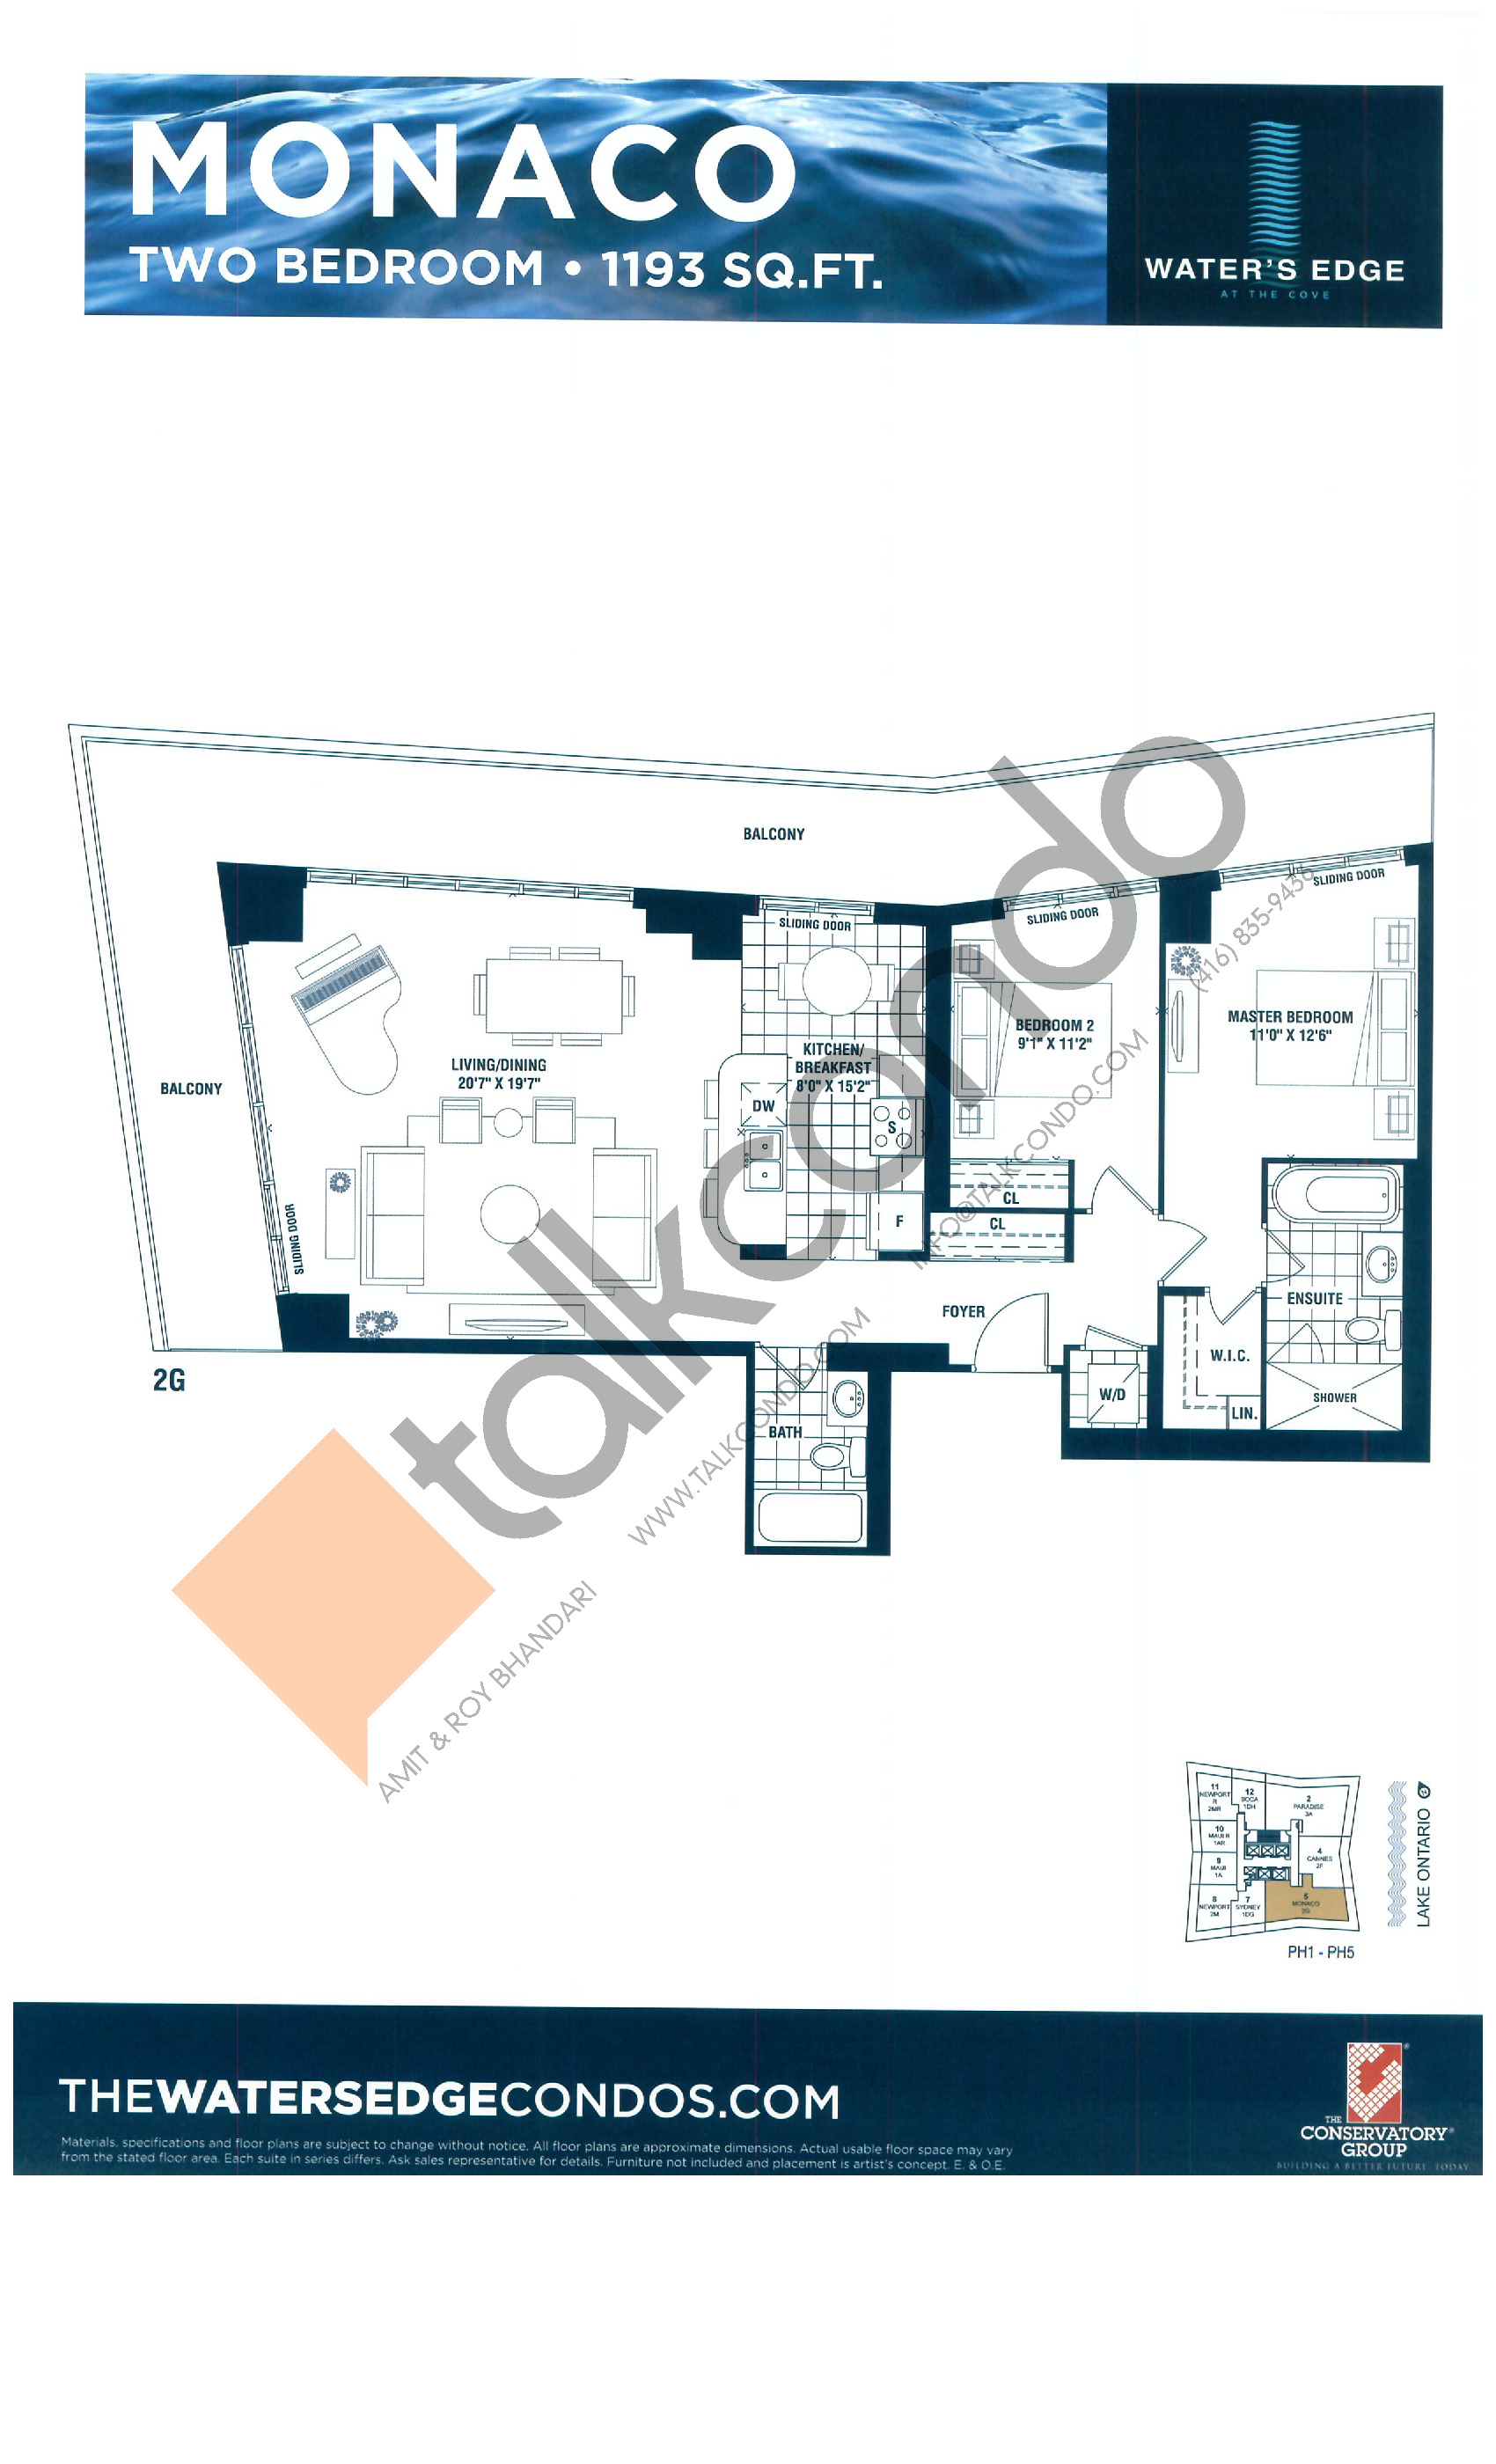 Monaco Floor Plan at Water's Edge at the Cove Condos - 1193 sq.ft